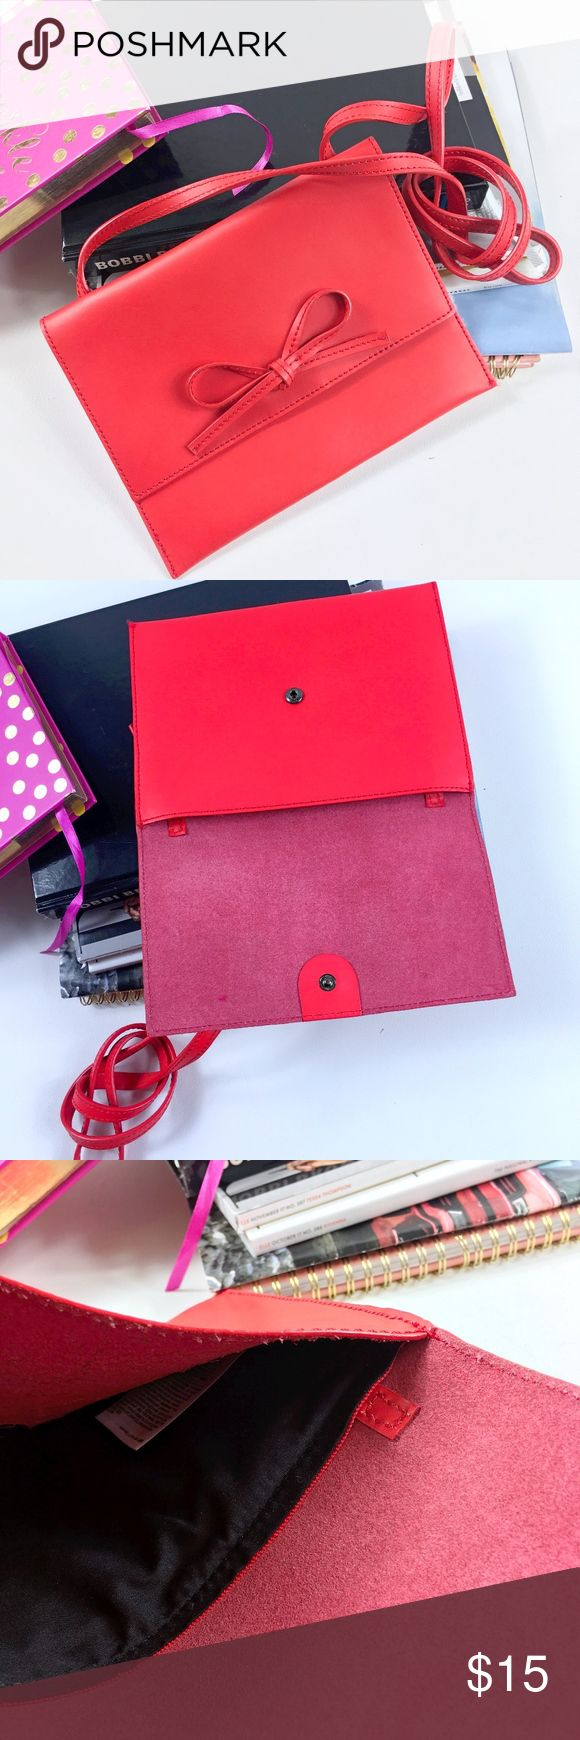 Gap Red Bow Cross Body Clutch Gap red/pink cross body clutch  brand new without tags one size man made GAP Bags Crossbody Bags